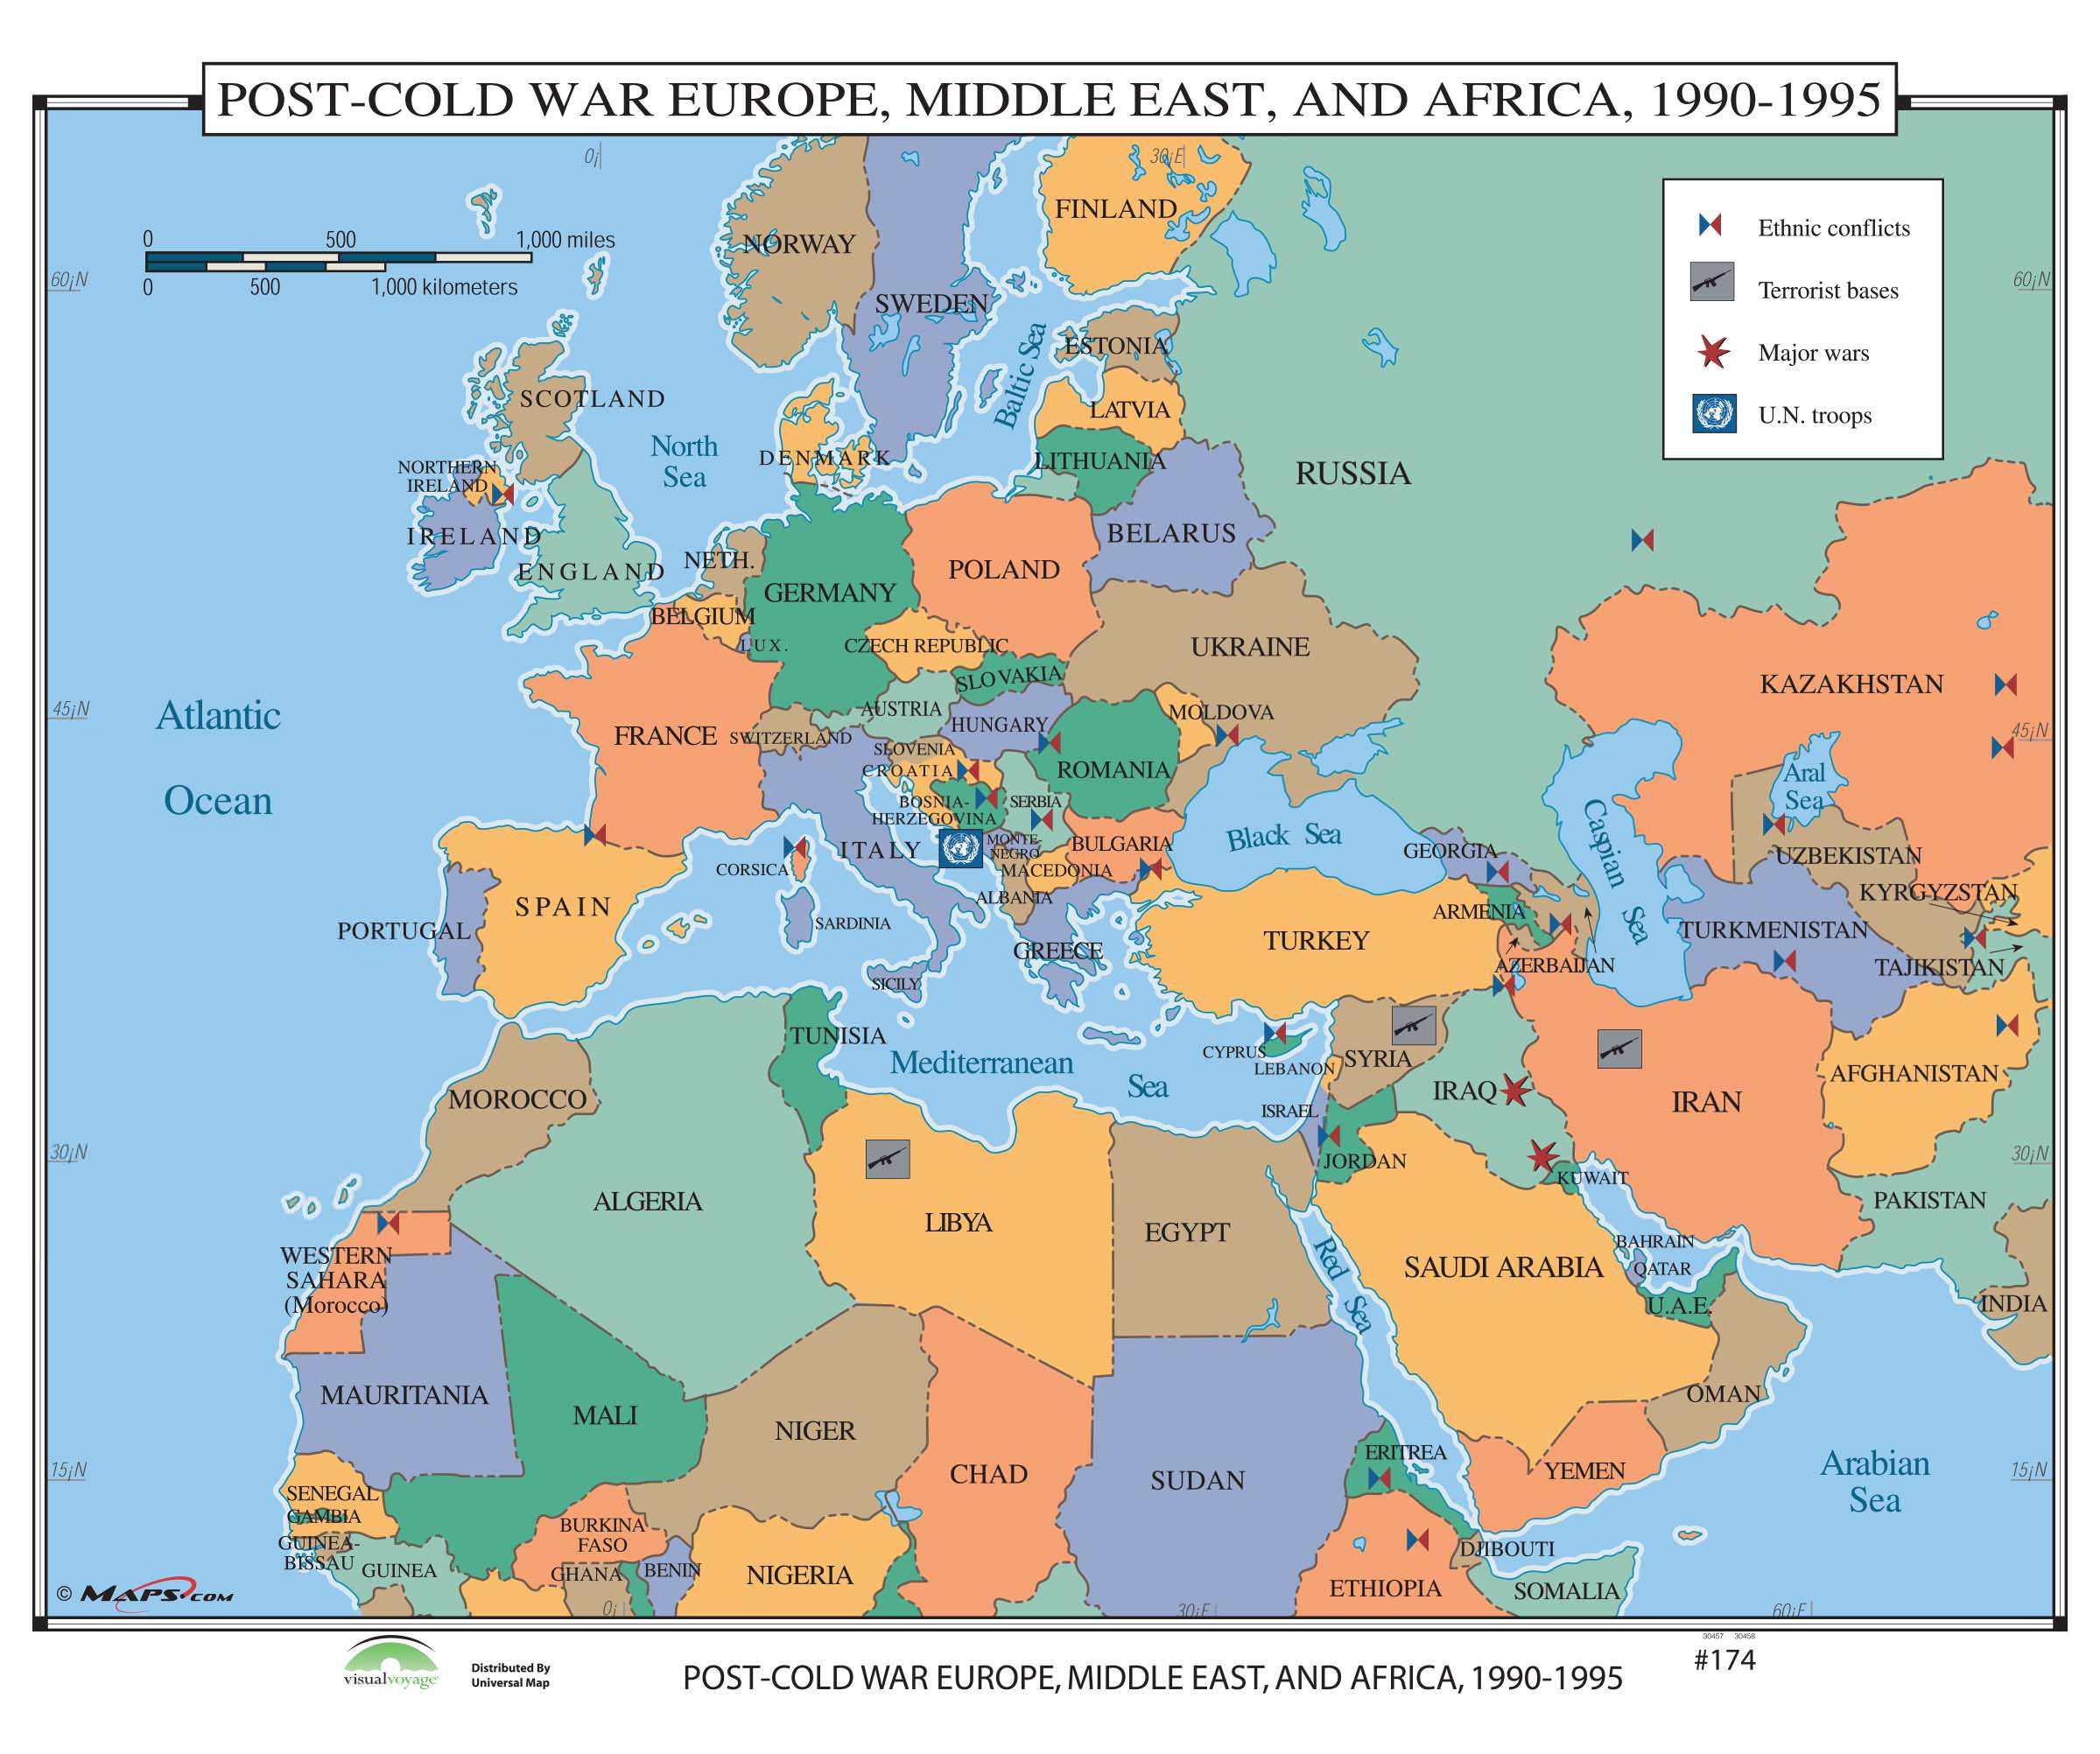 174 Post-Cold War Europe, Middle East & Africa, 1990-1995 – KAPPA ...